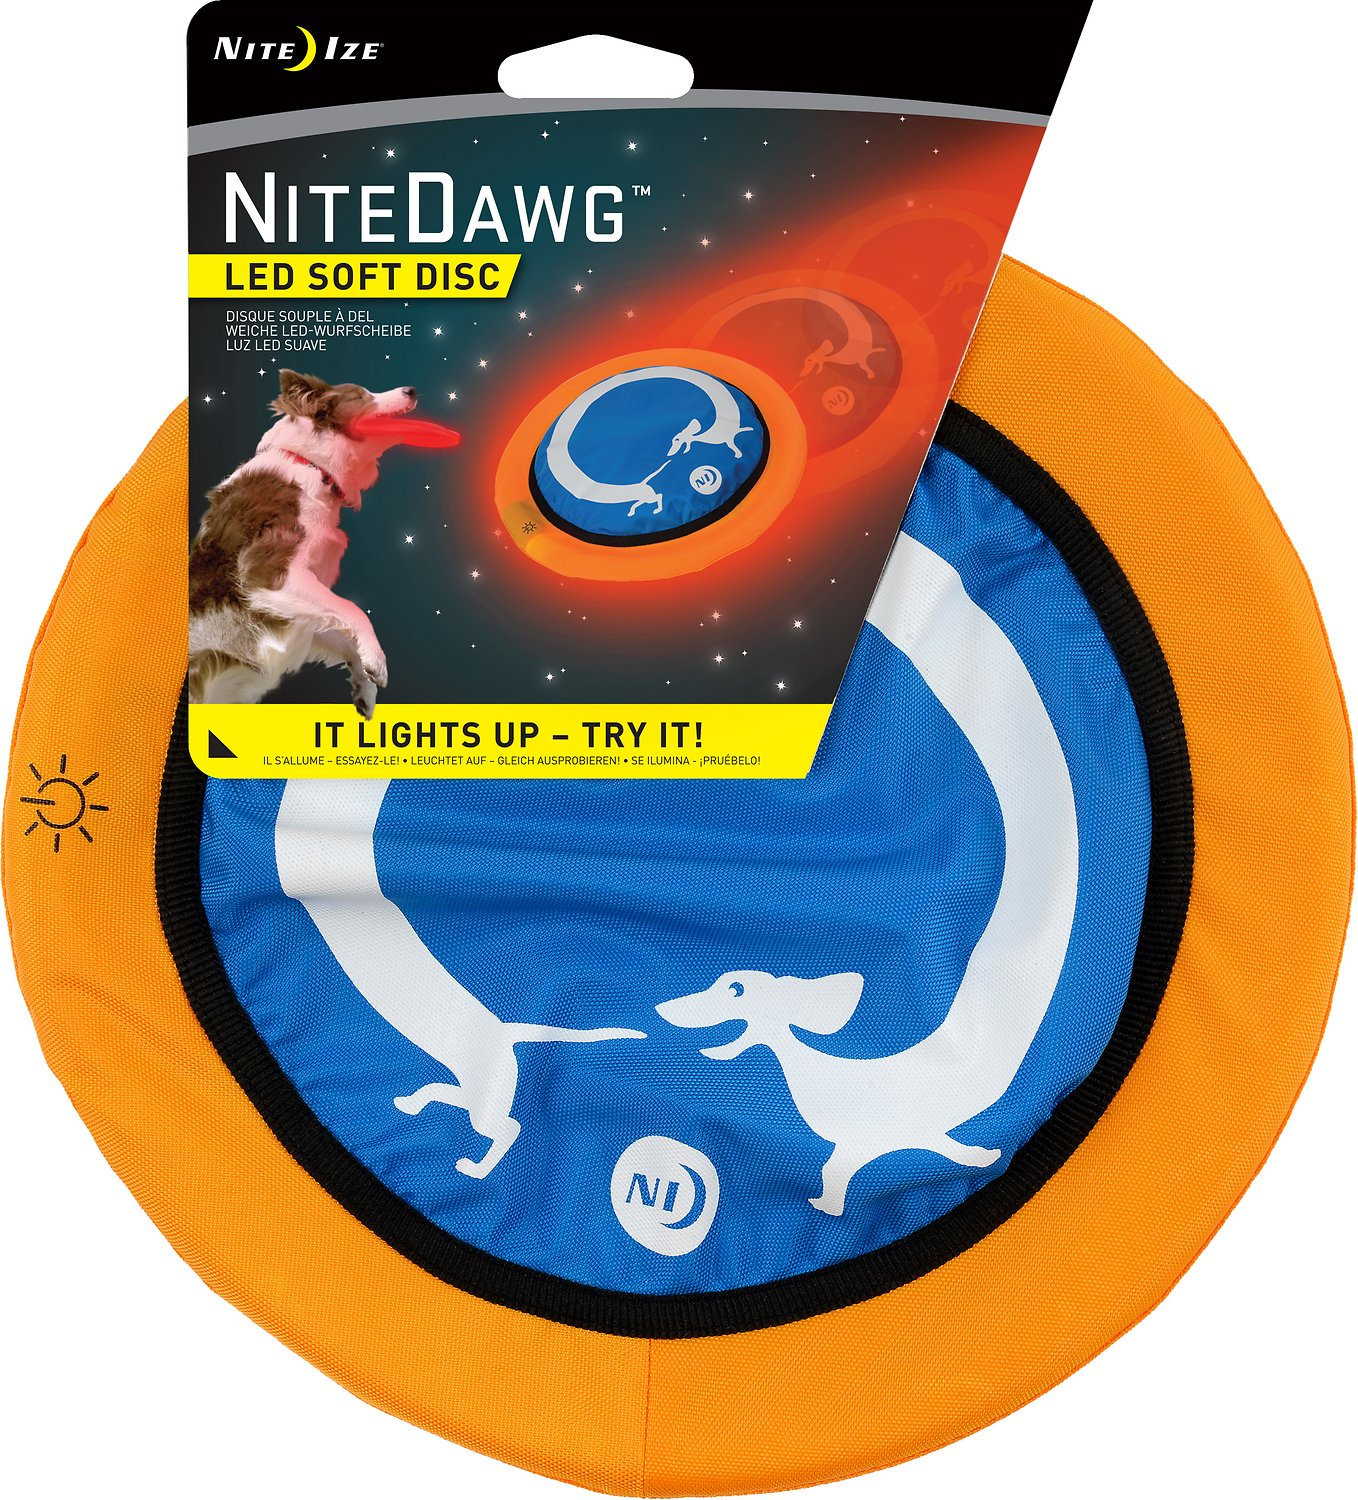 Nite Ize Nite Dawg Led Soft Disc Dog Toy Chewy Com